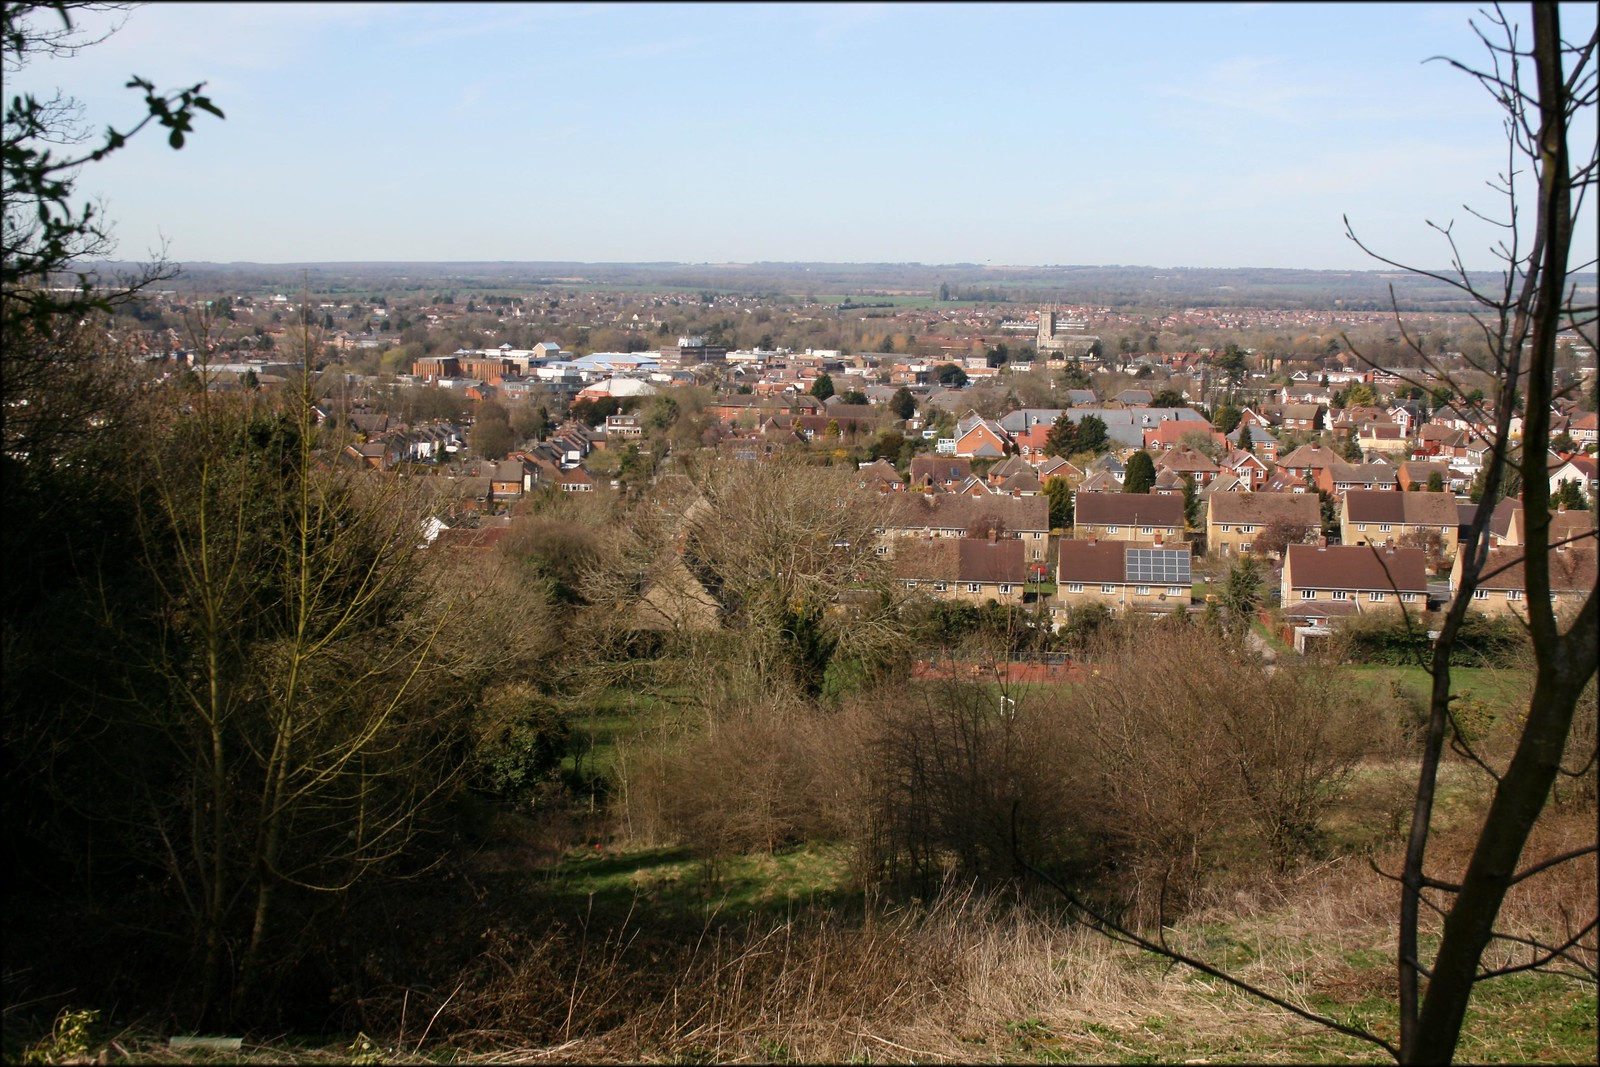 Andover View over Andover